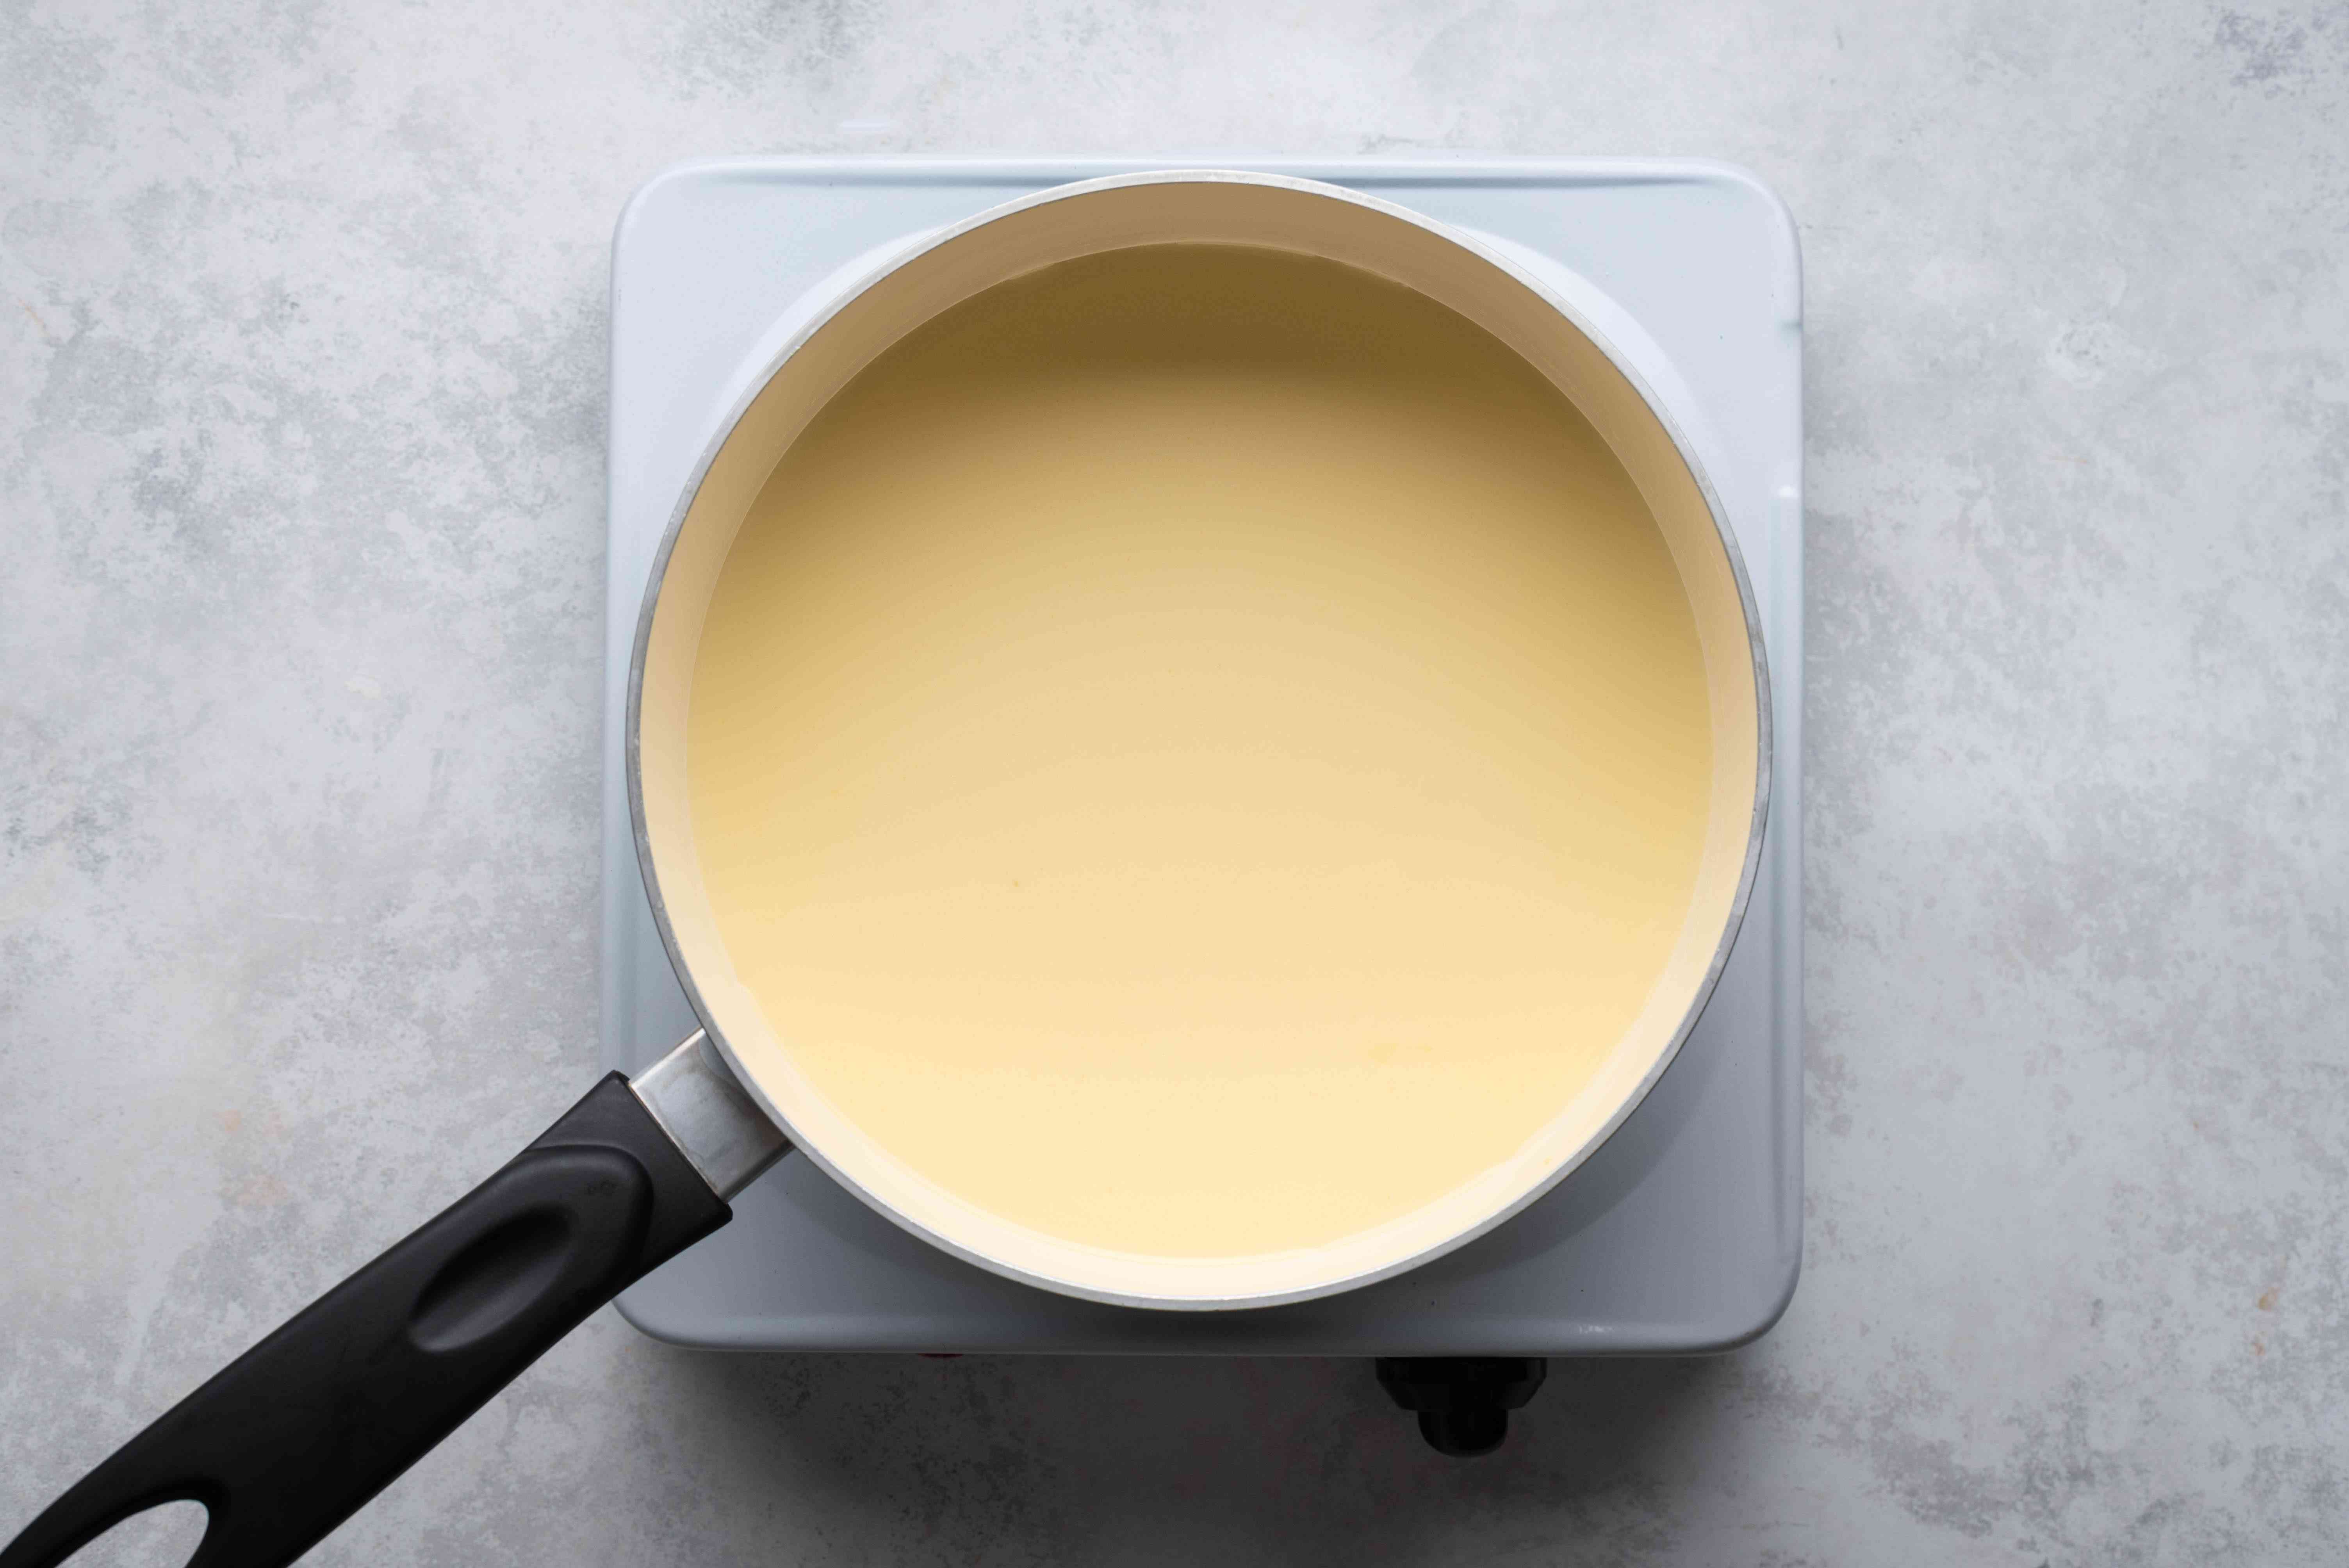 Combine the heavy cream, milk, sugar, and golden syrup in a large, heavy-bottomed saucepan